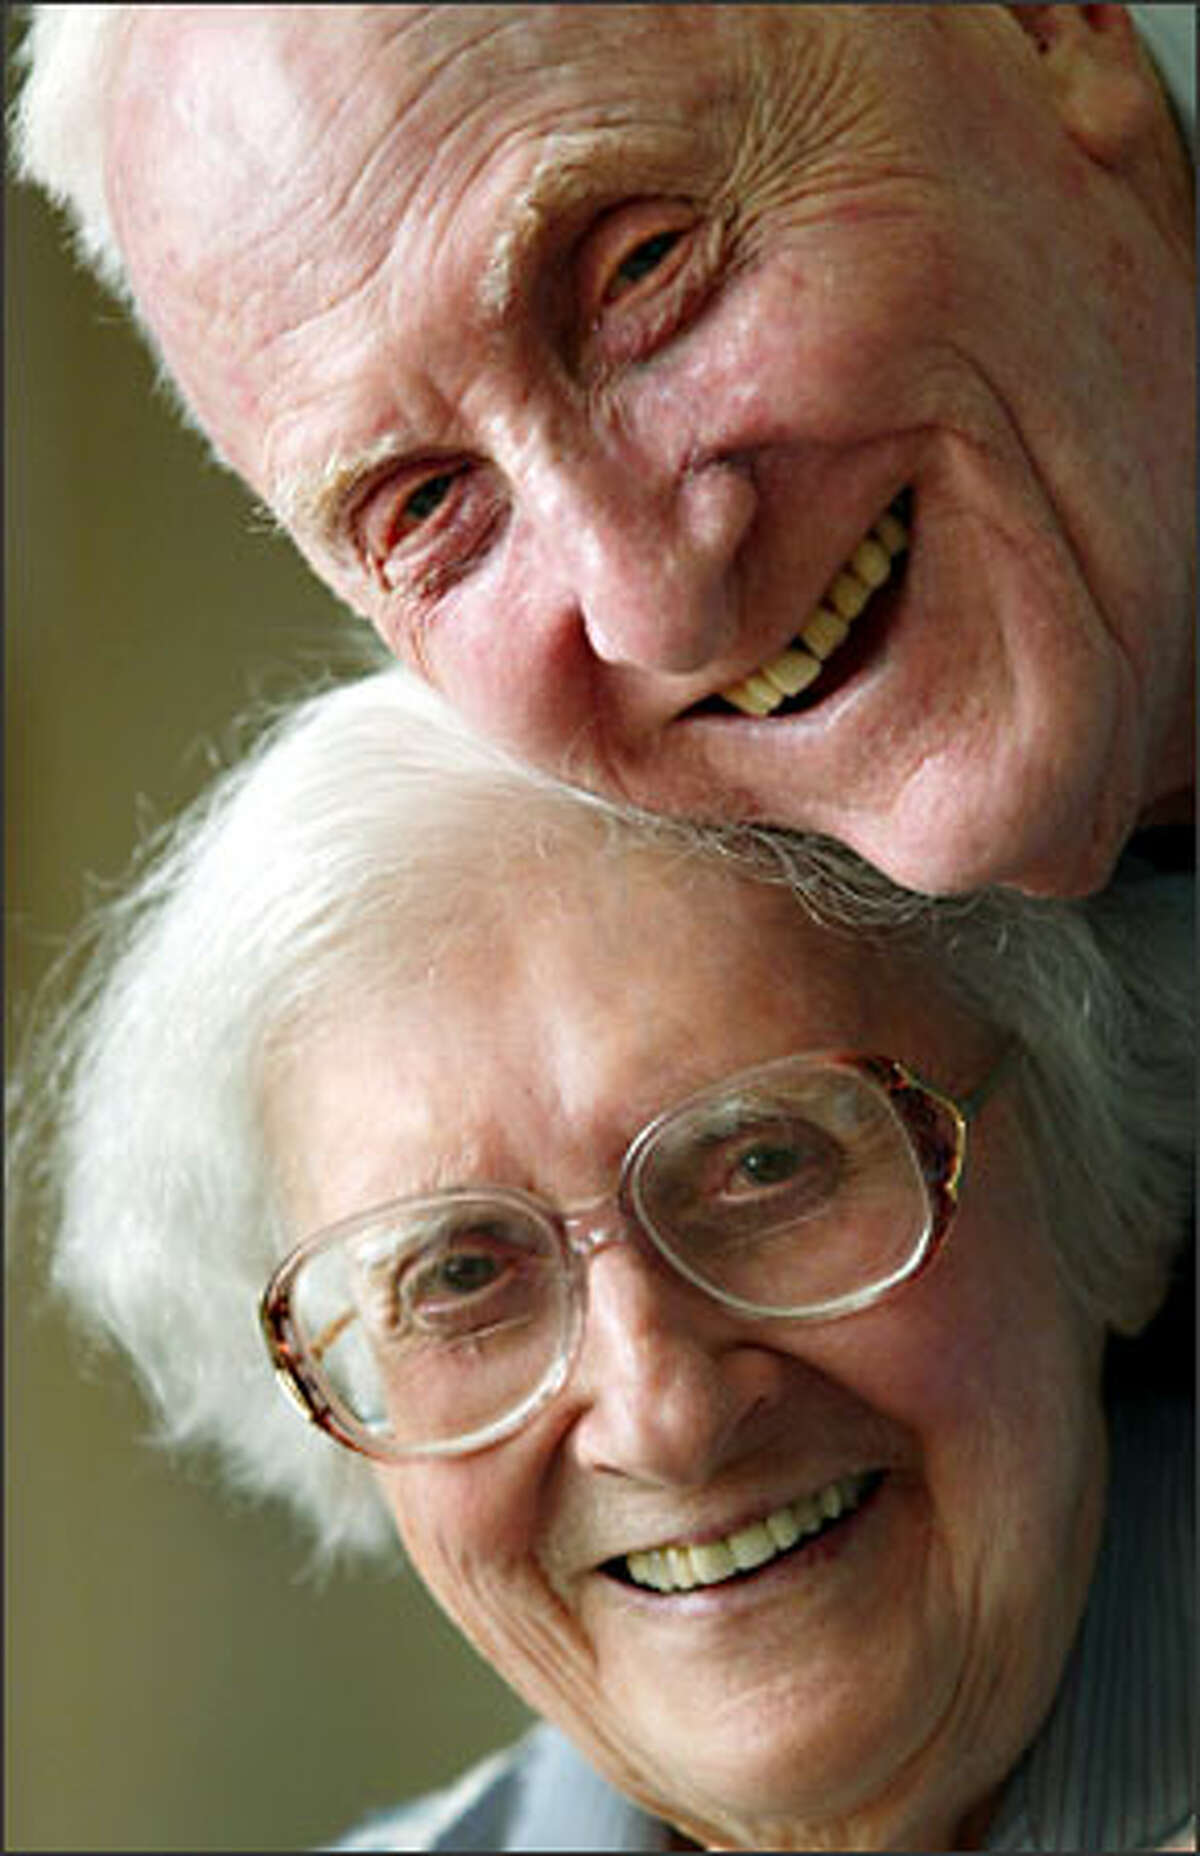 Henry Wiener, 89, is the primary caretaker for his wife, Virginia Wiener, 90, who was diagnosed with Alzheimer's disease four years ago.